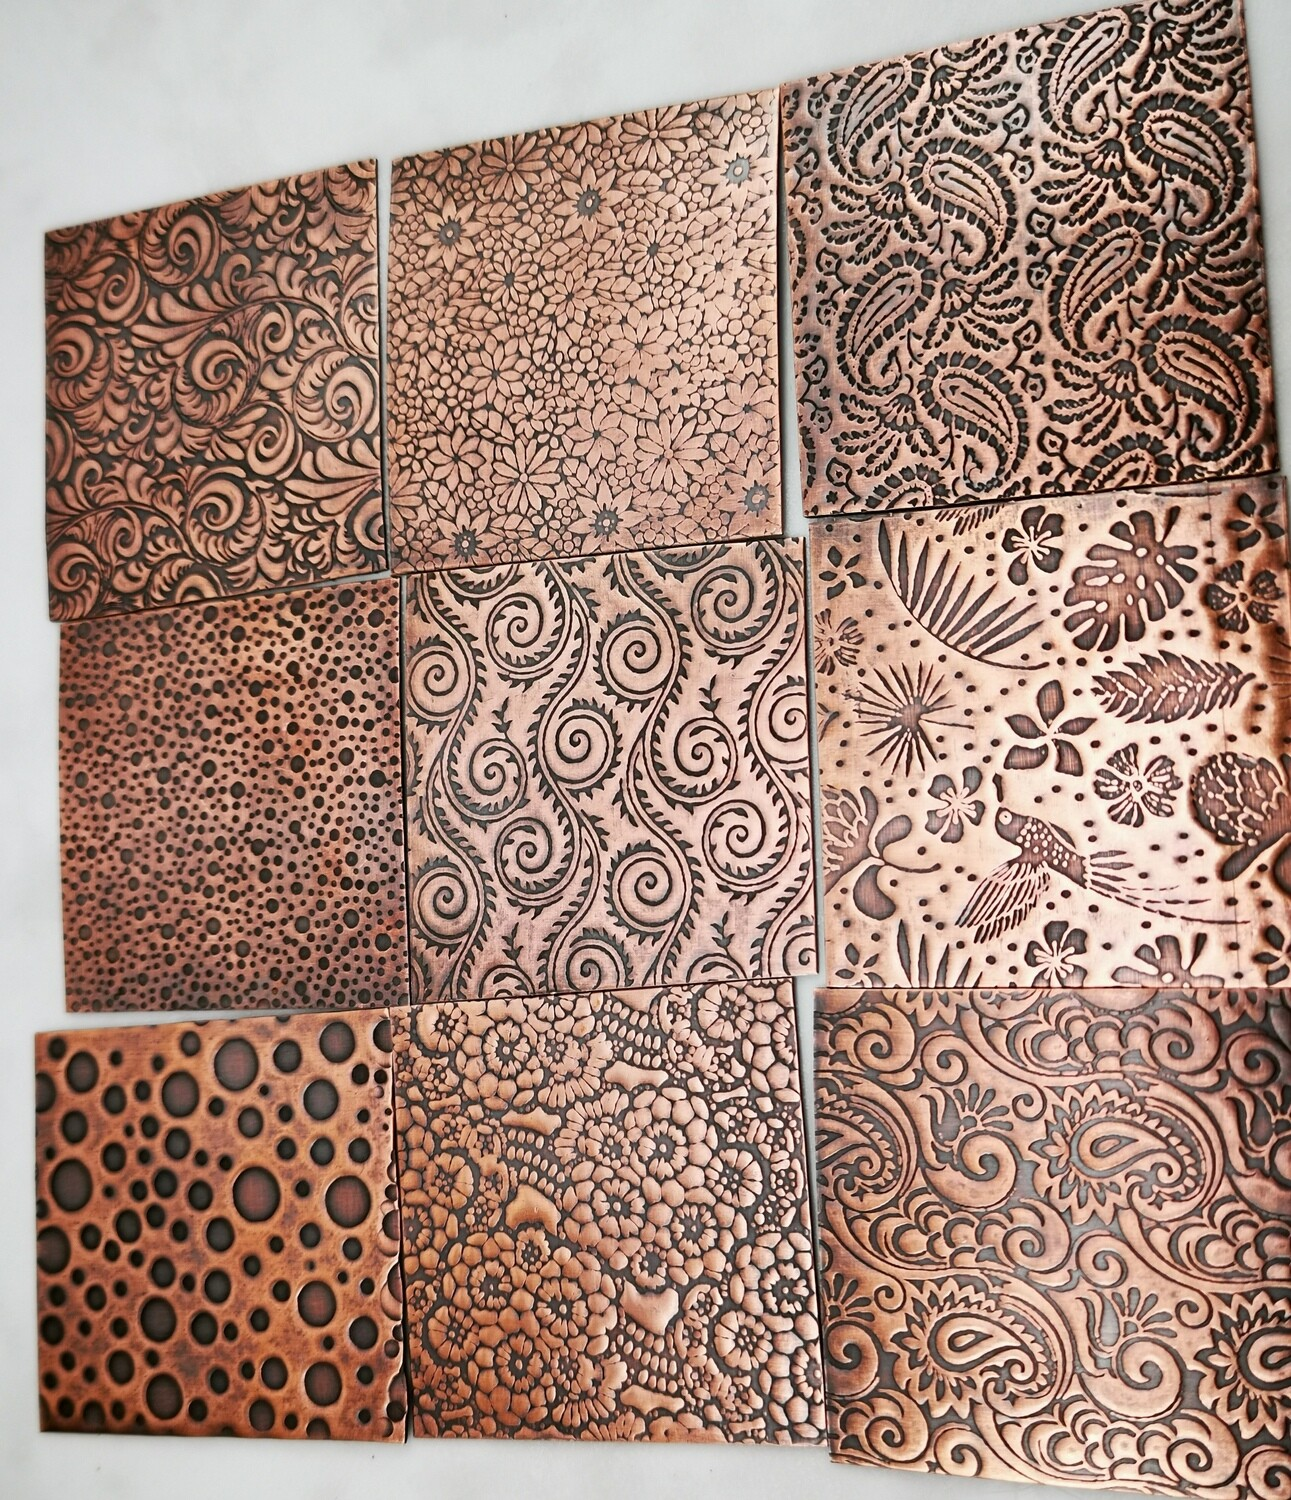 "One 2"" x 2"" Square 22 Gauge Textured Copper"